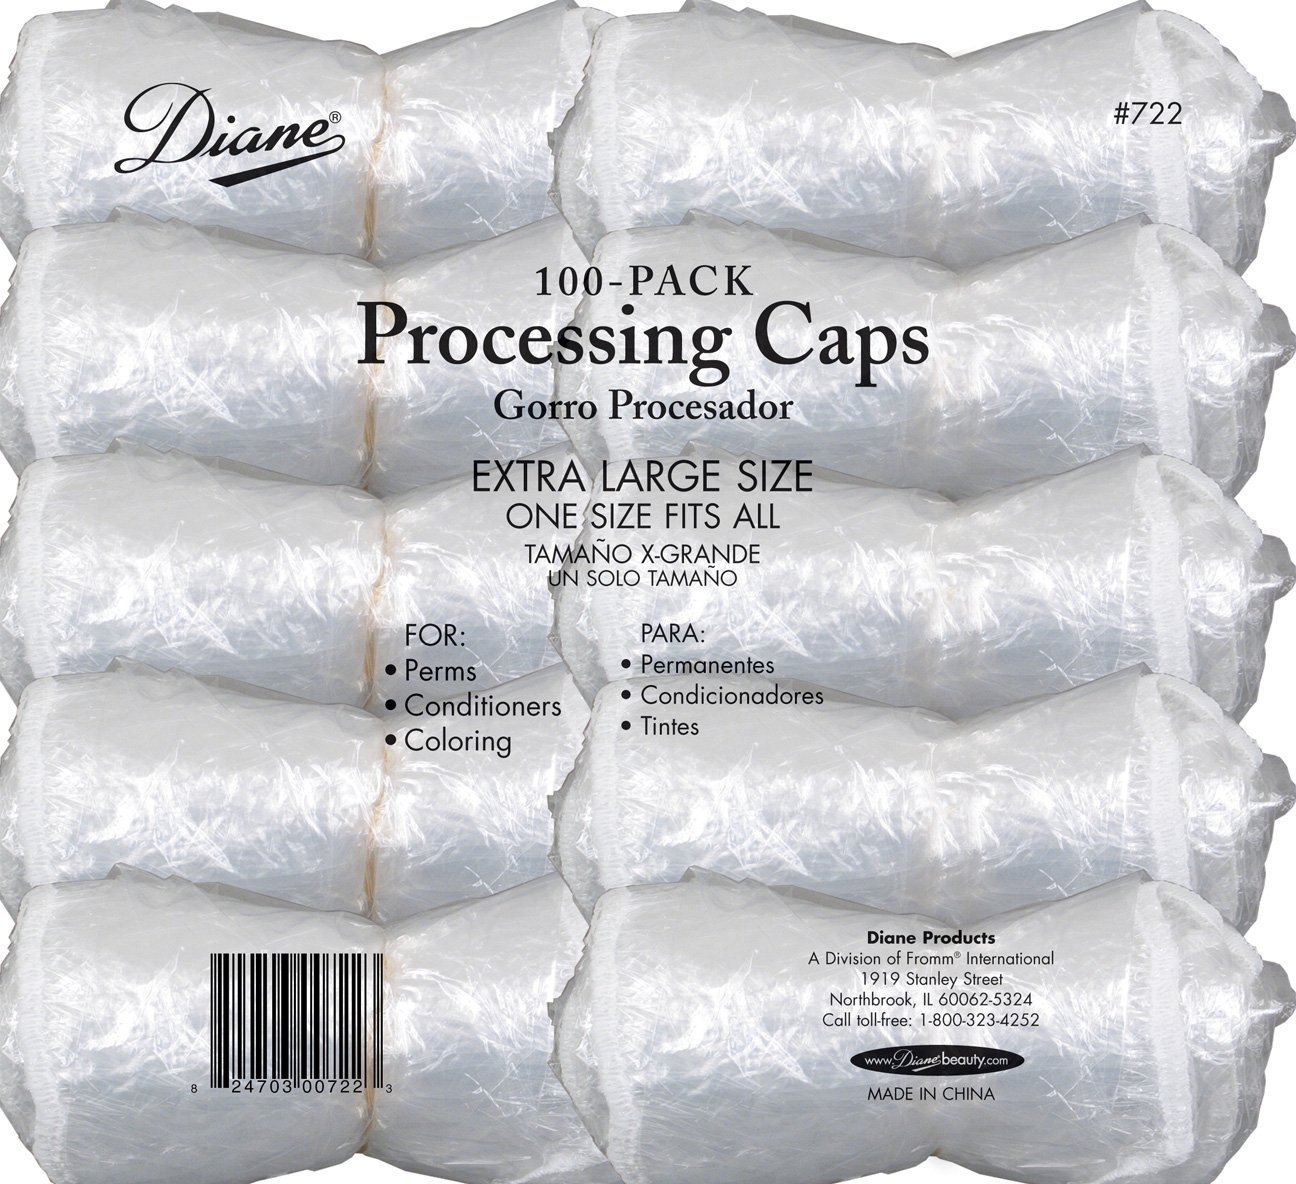 Diane Processing Caps, 200-pack, hair color, chemicals, perms, hair conditioner, one size, extra large, reusable, protects your hair, dyeing, hair care, salon use, professional use, stylist, secures, elastic band